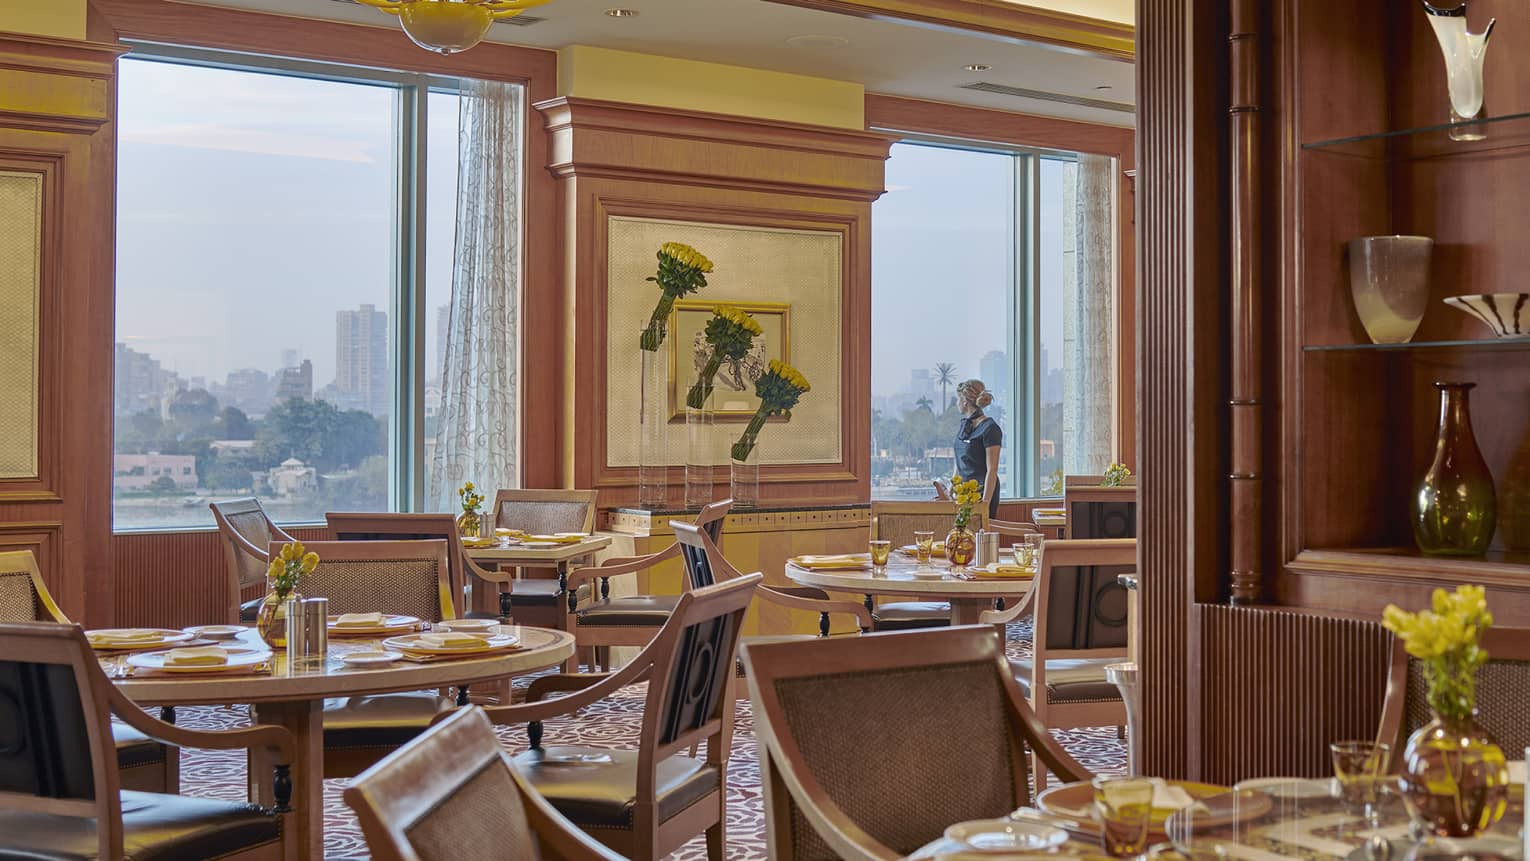 Hotel staff stands at window overlooking river and city in dining room beyond tables, chairs